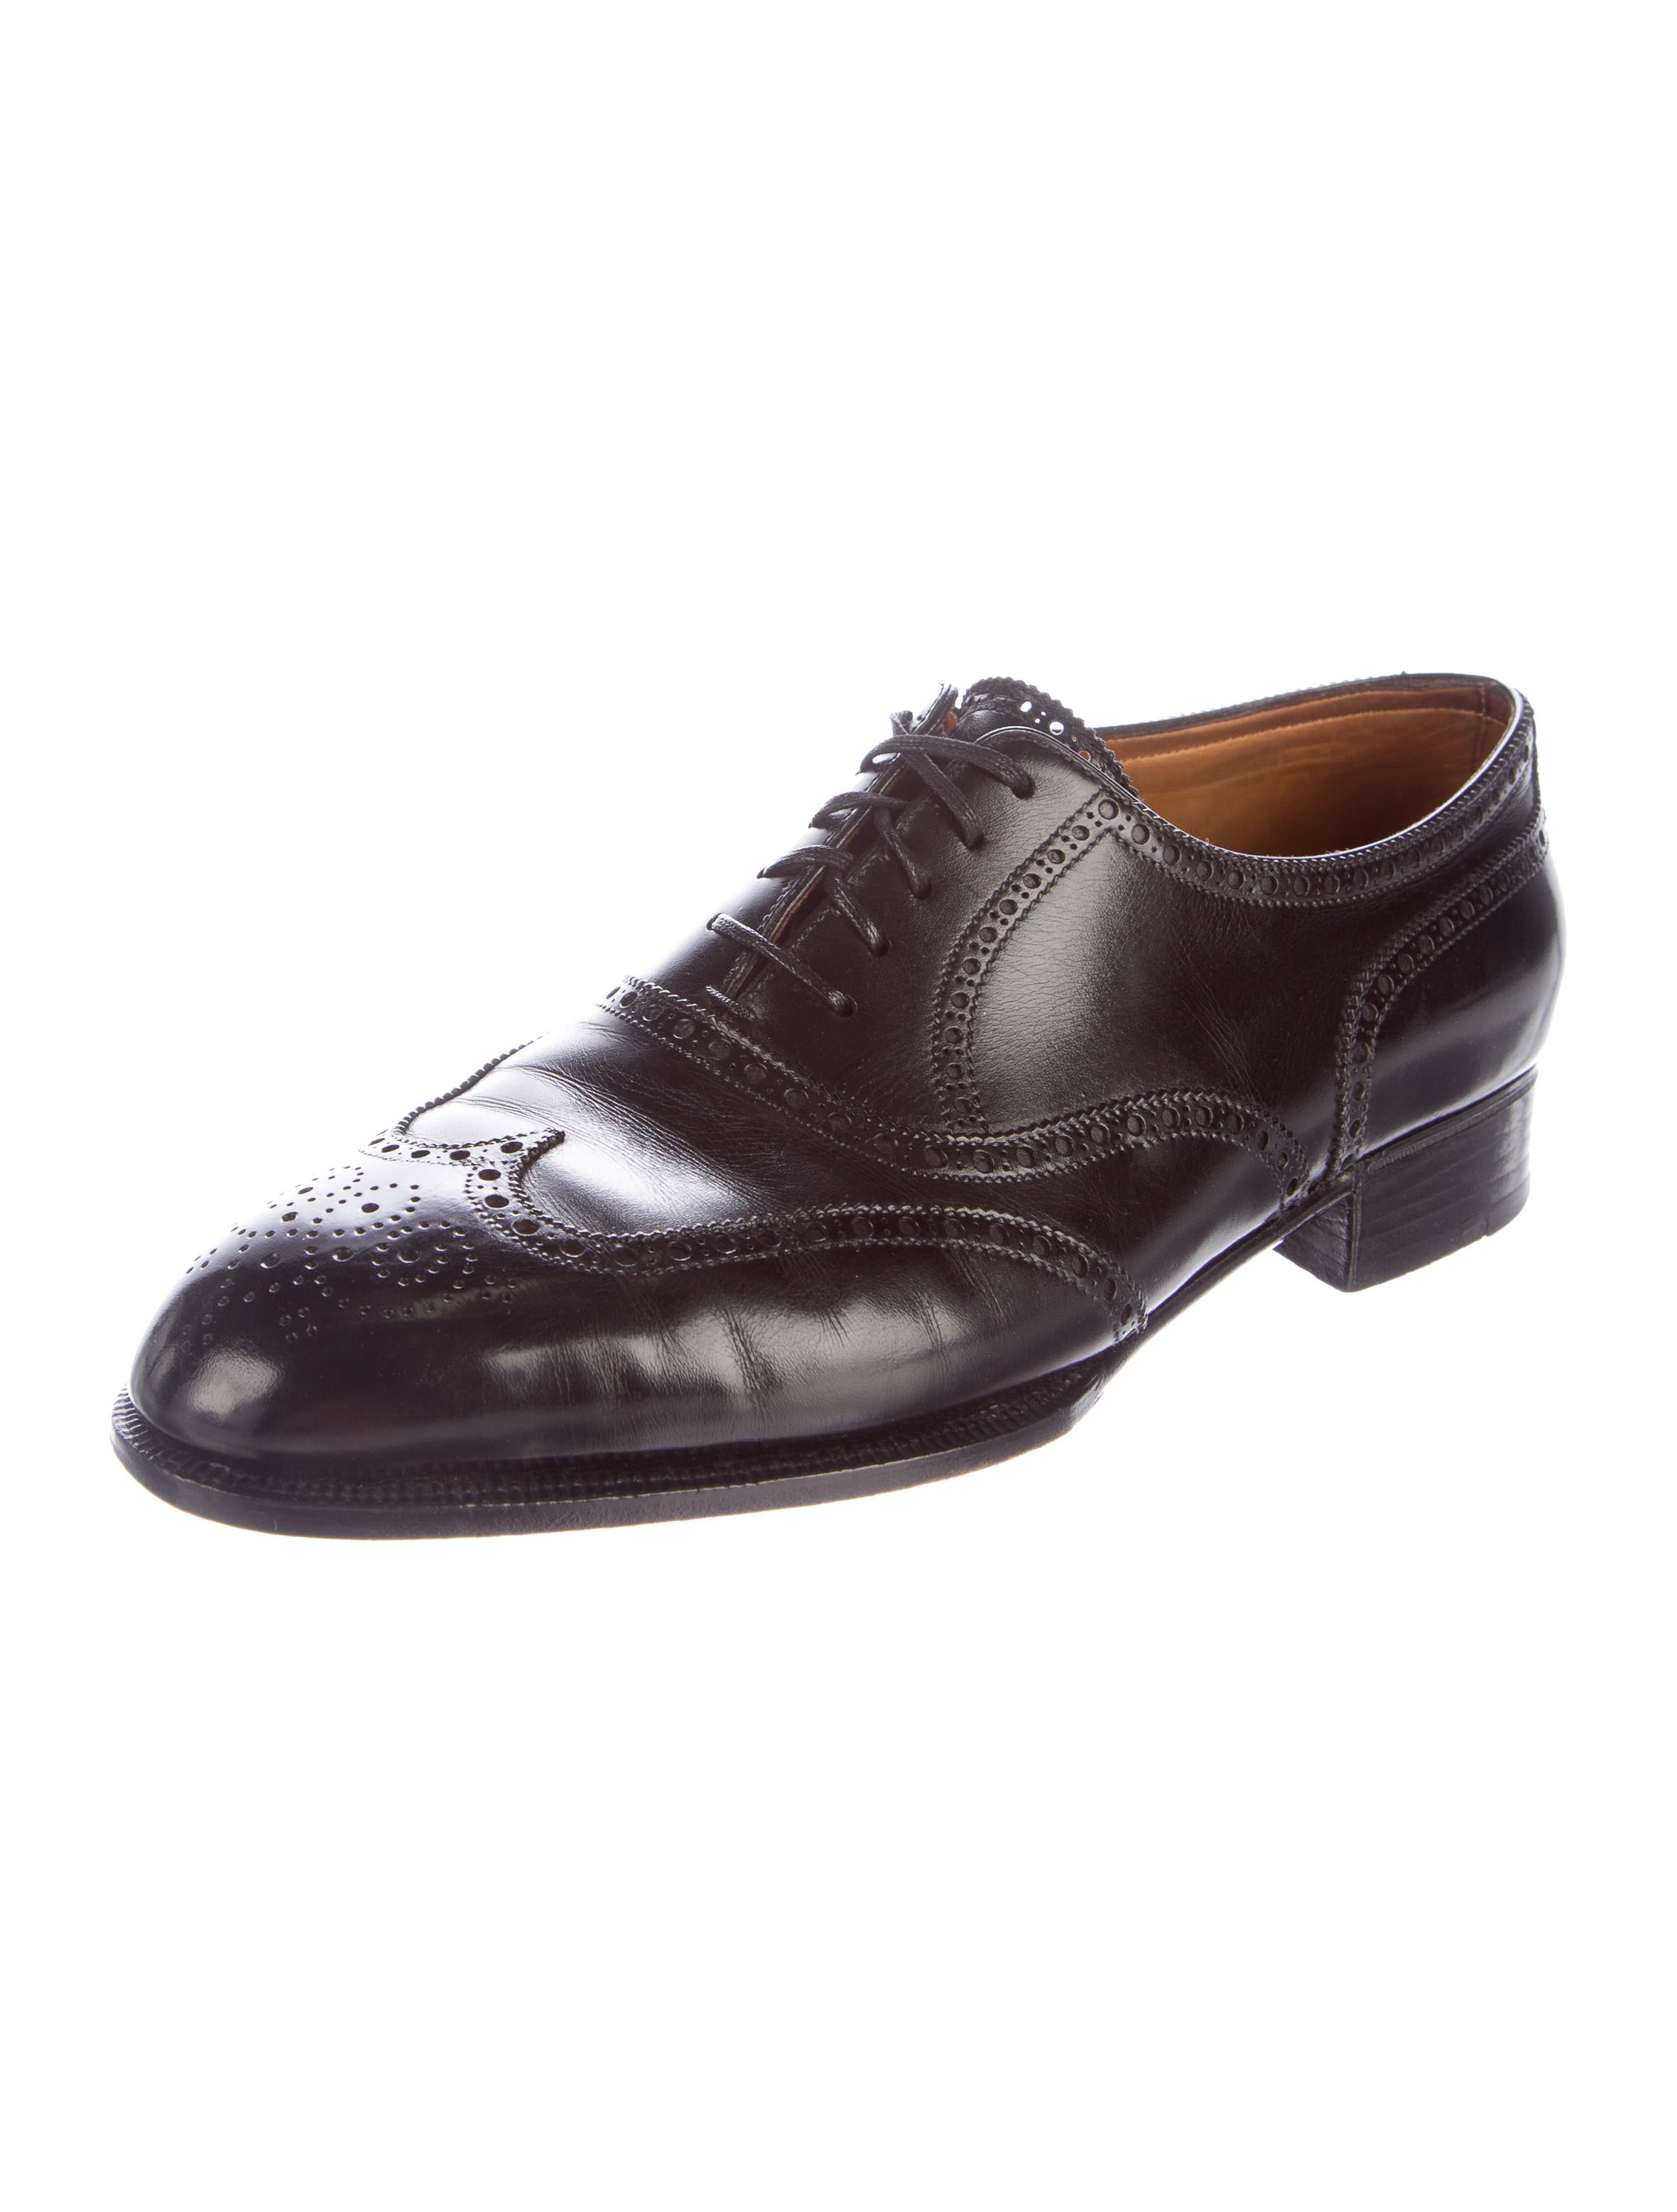 lobb leather wingtip brogues shoes jol20362 the